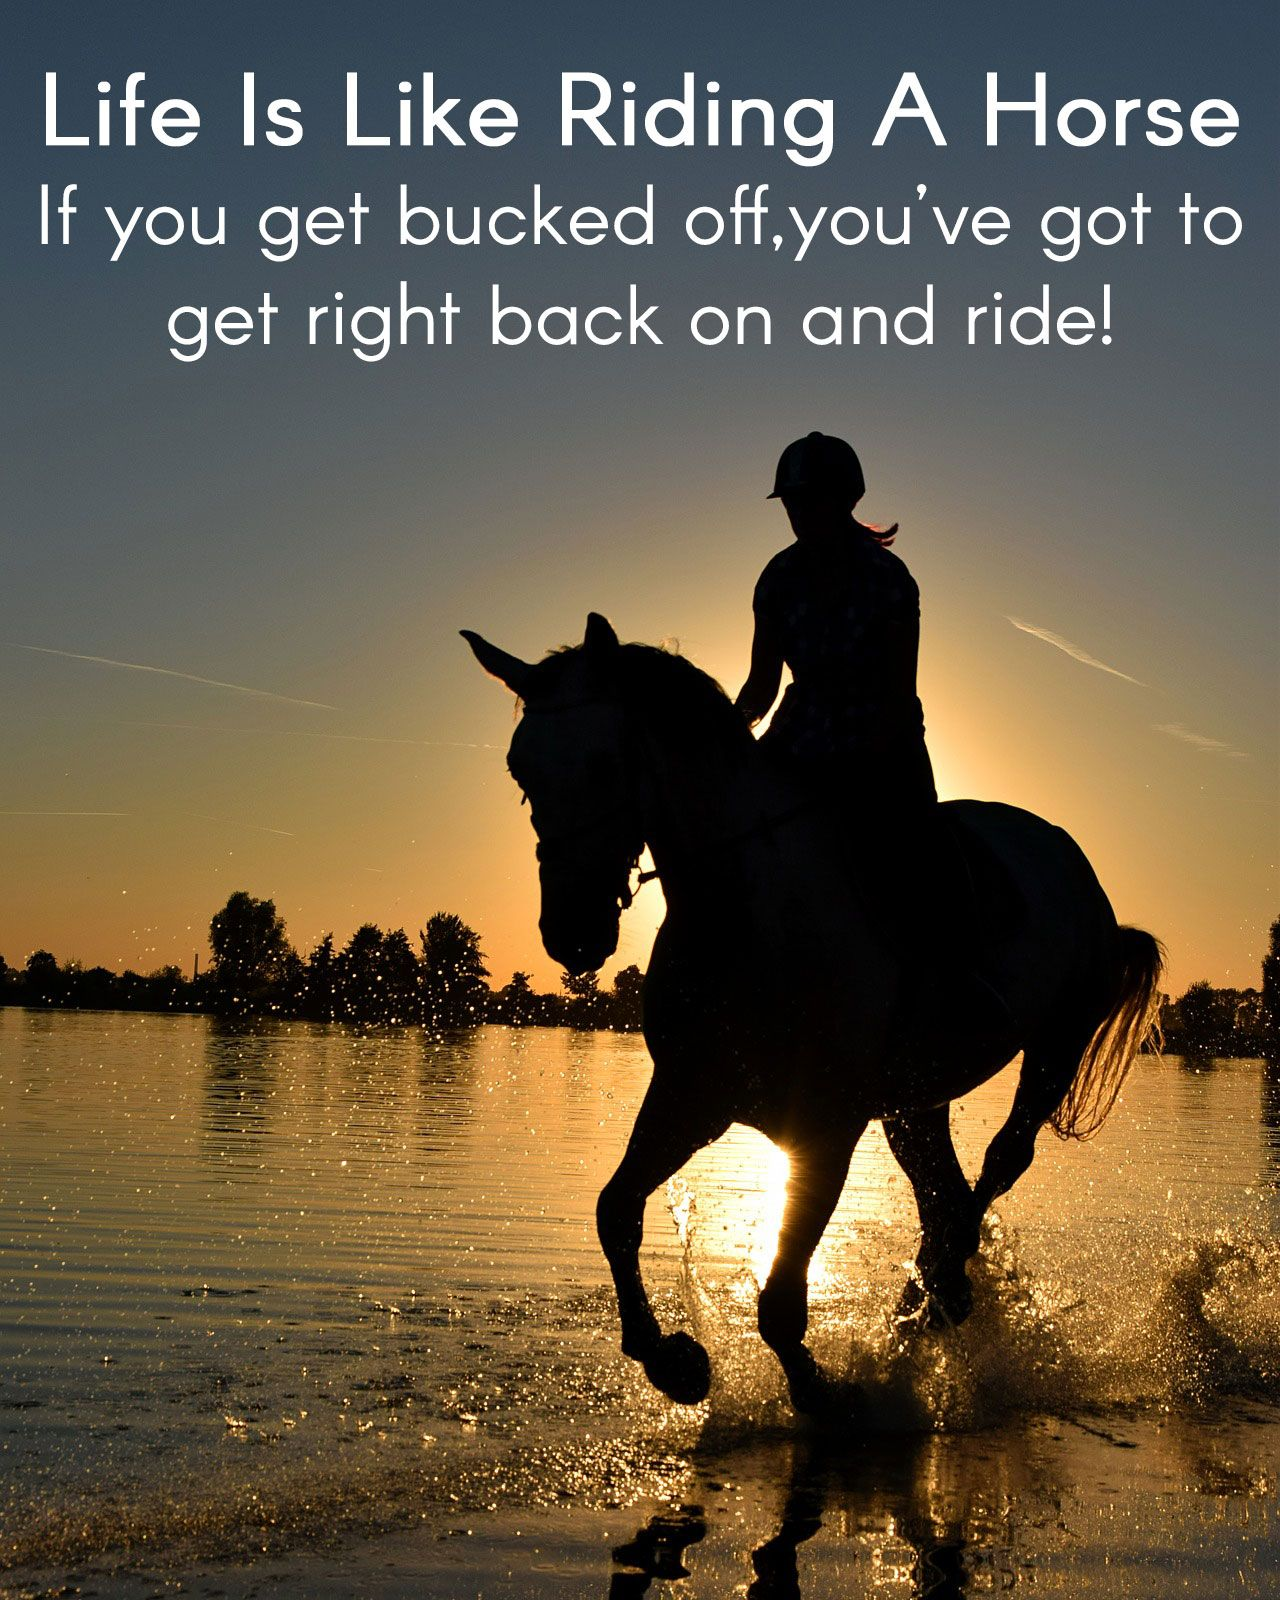 Pin by Kath L on Quotes | Pinterest | Horse, Horse humor ...